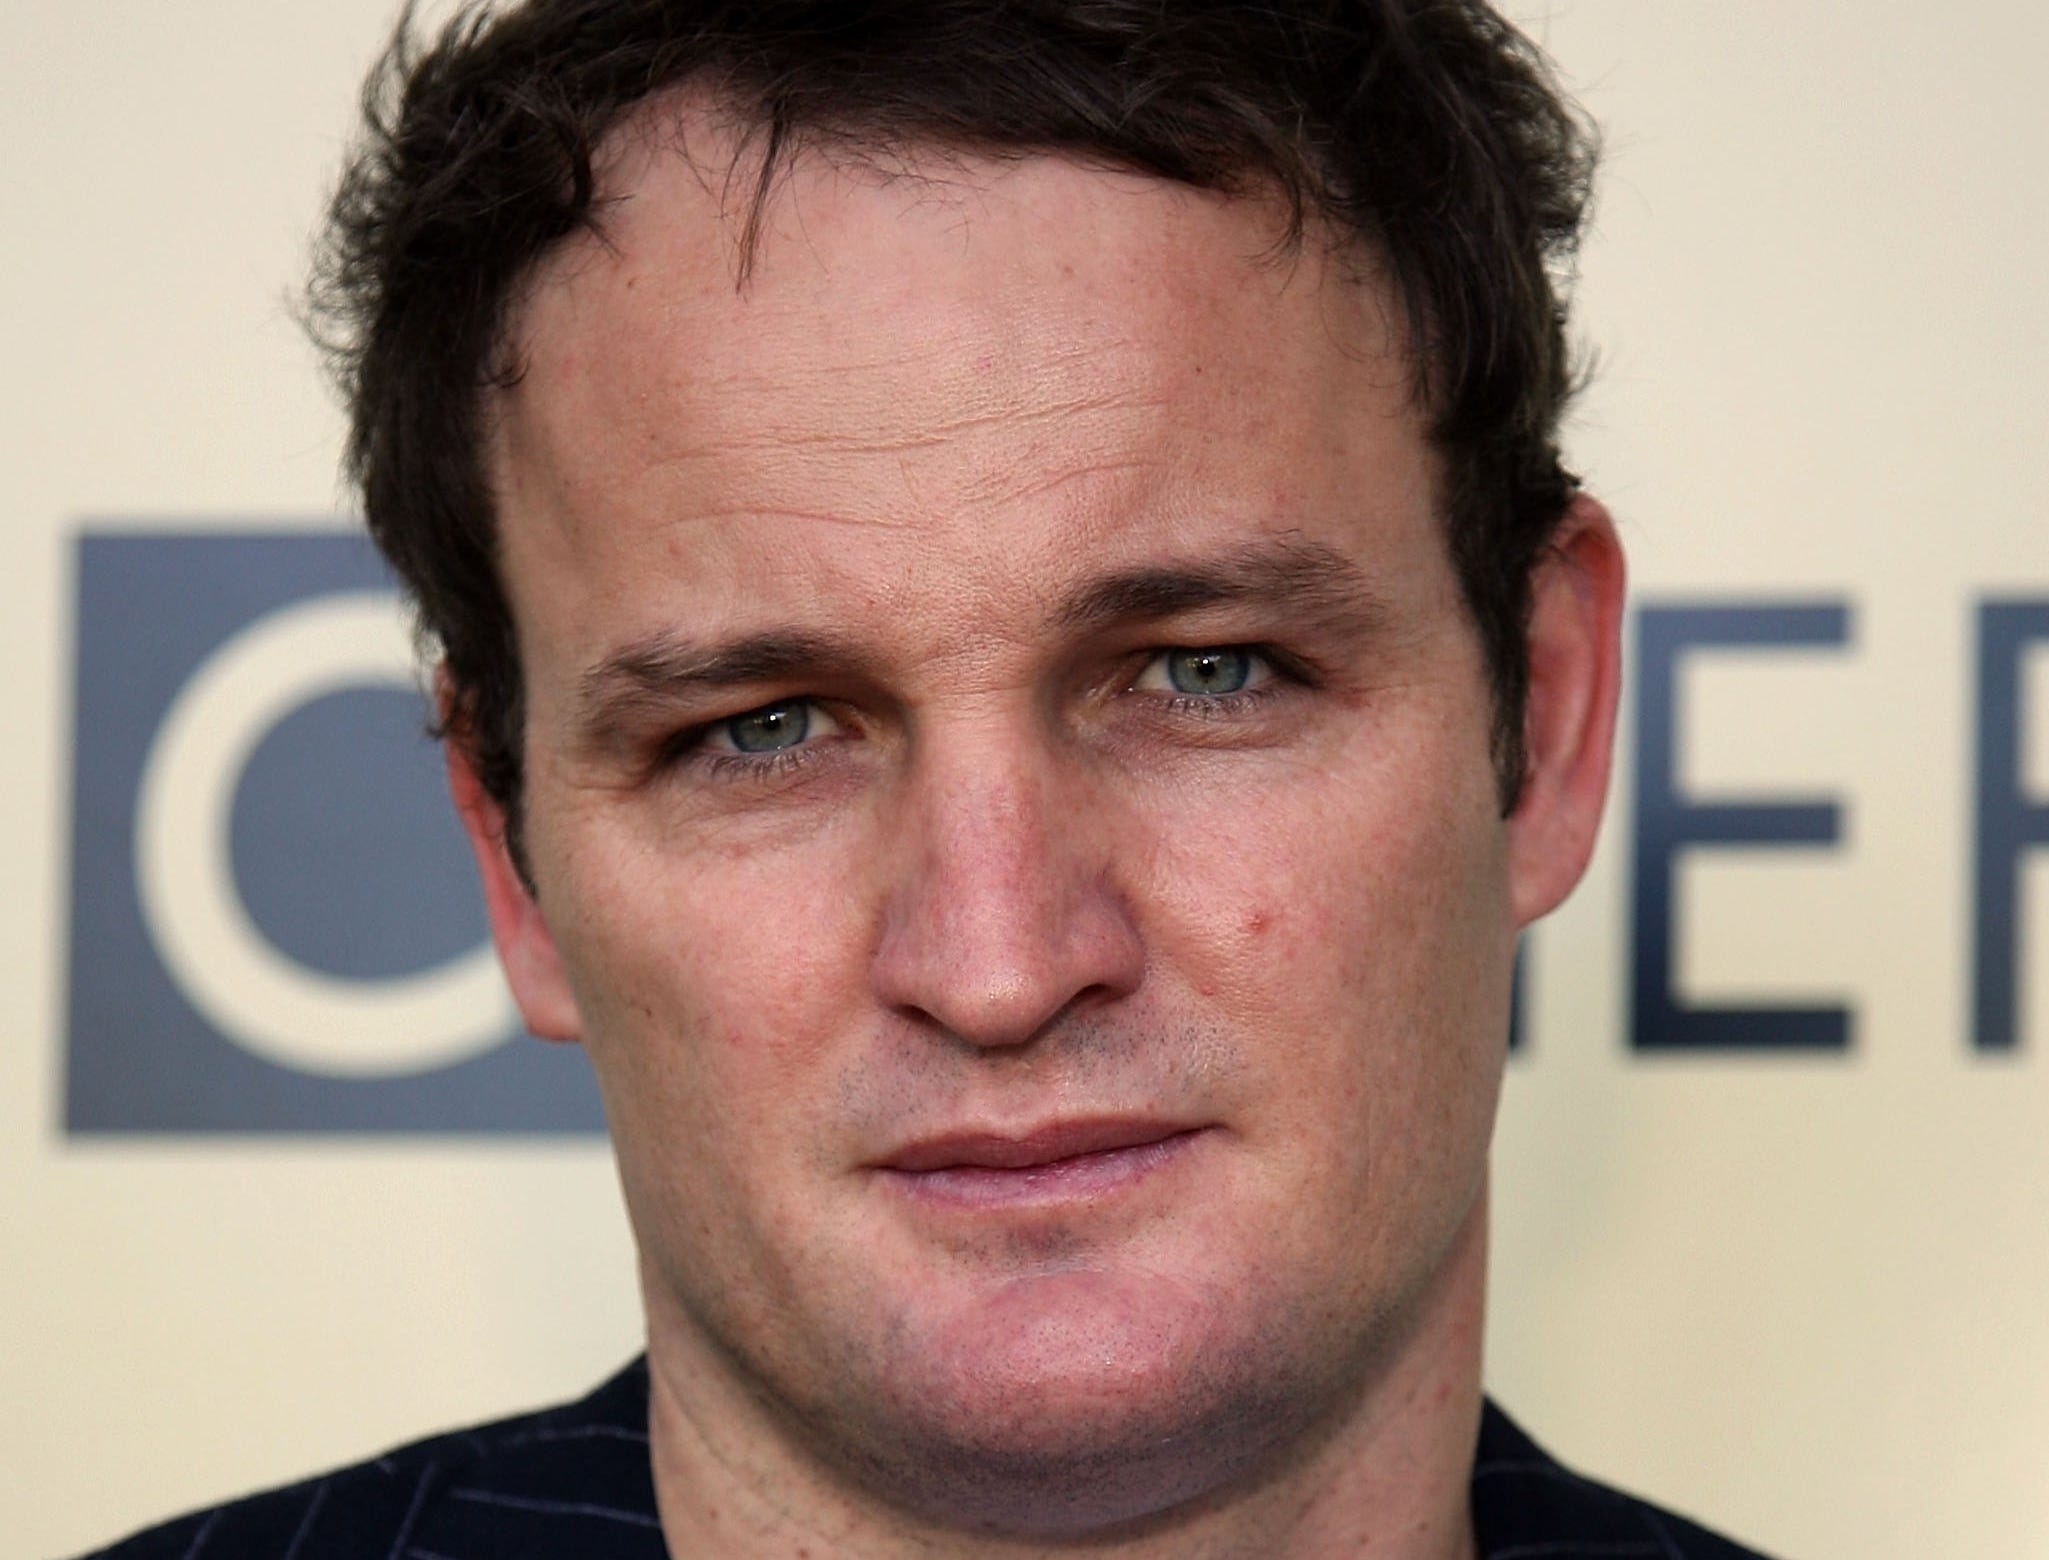 Jason Clarke arrives at the BAFTA/LA-Academy of Television Arts and Sciences Tea Party at the Century Hyatt on Aug. 26, 2006, in Century City, California.